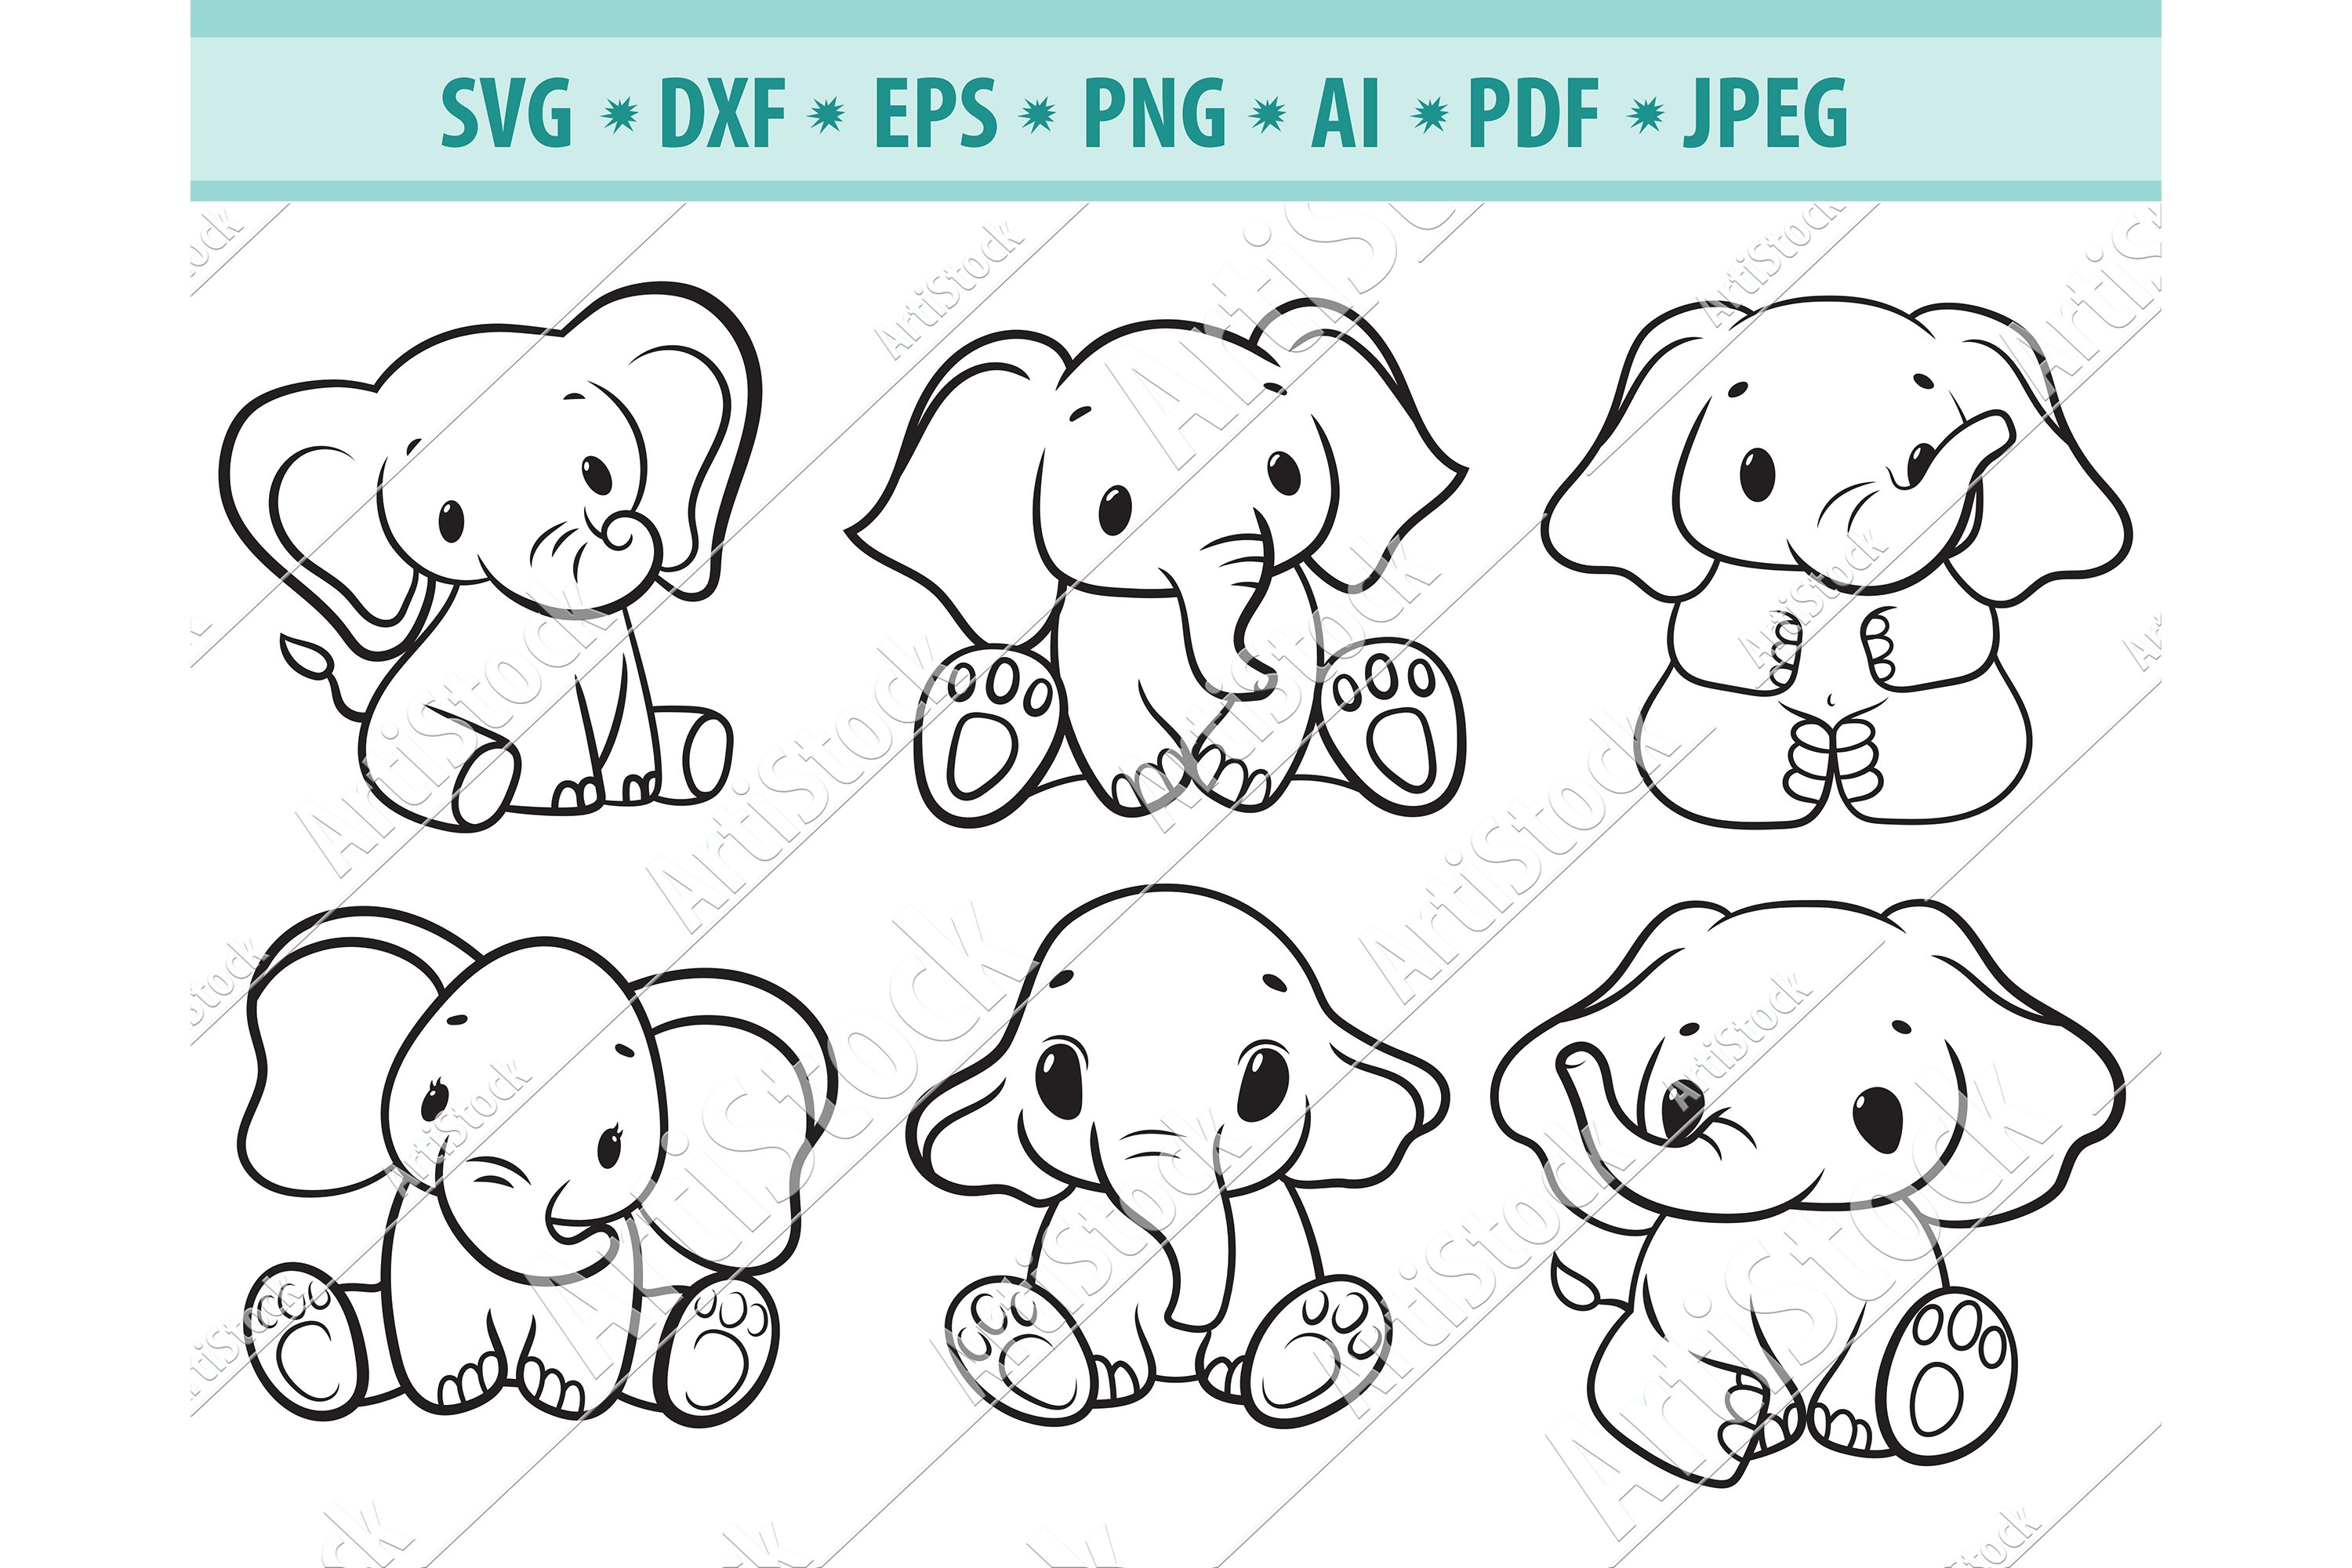 Elephants Svg Baby Elephant Png Cute Elephants Dxf Eps 809341 Cut Files Design Bundles Lovepik provides 32000+ elephant png photos in hd resolution that updates everyday, you can free download for both personal and commerical use. elephants svg baby elephant png cute elephants dxf eps